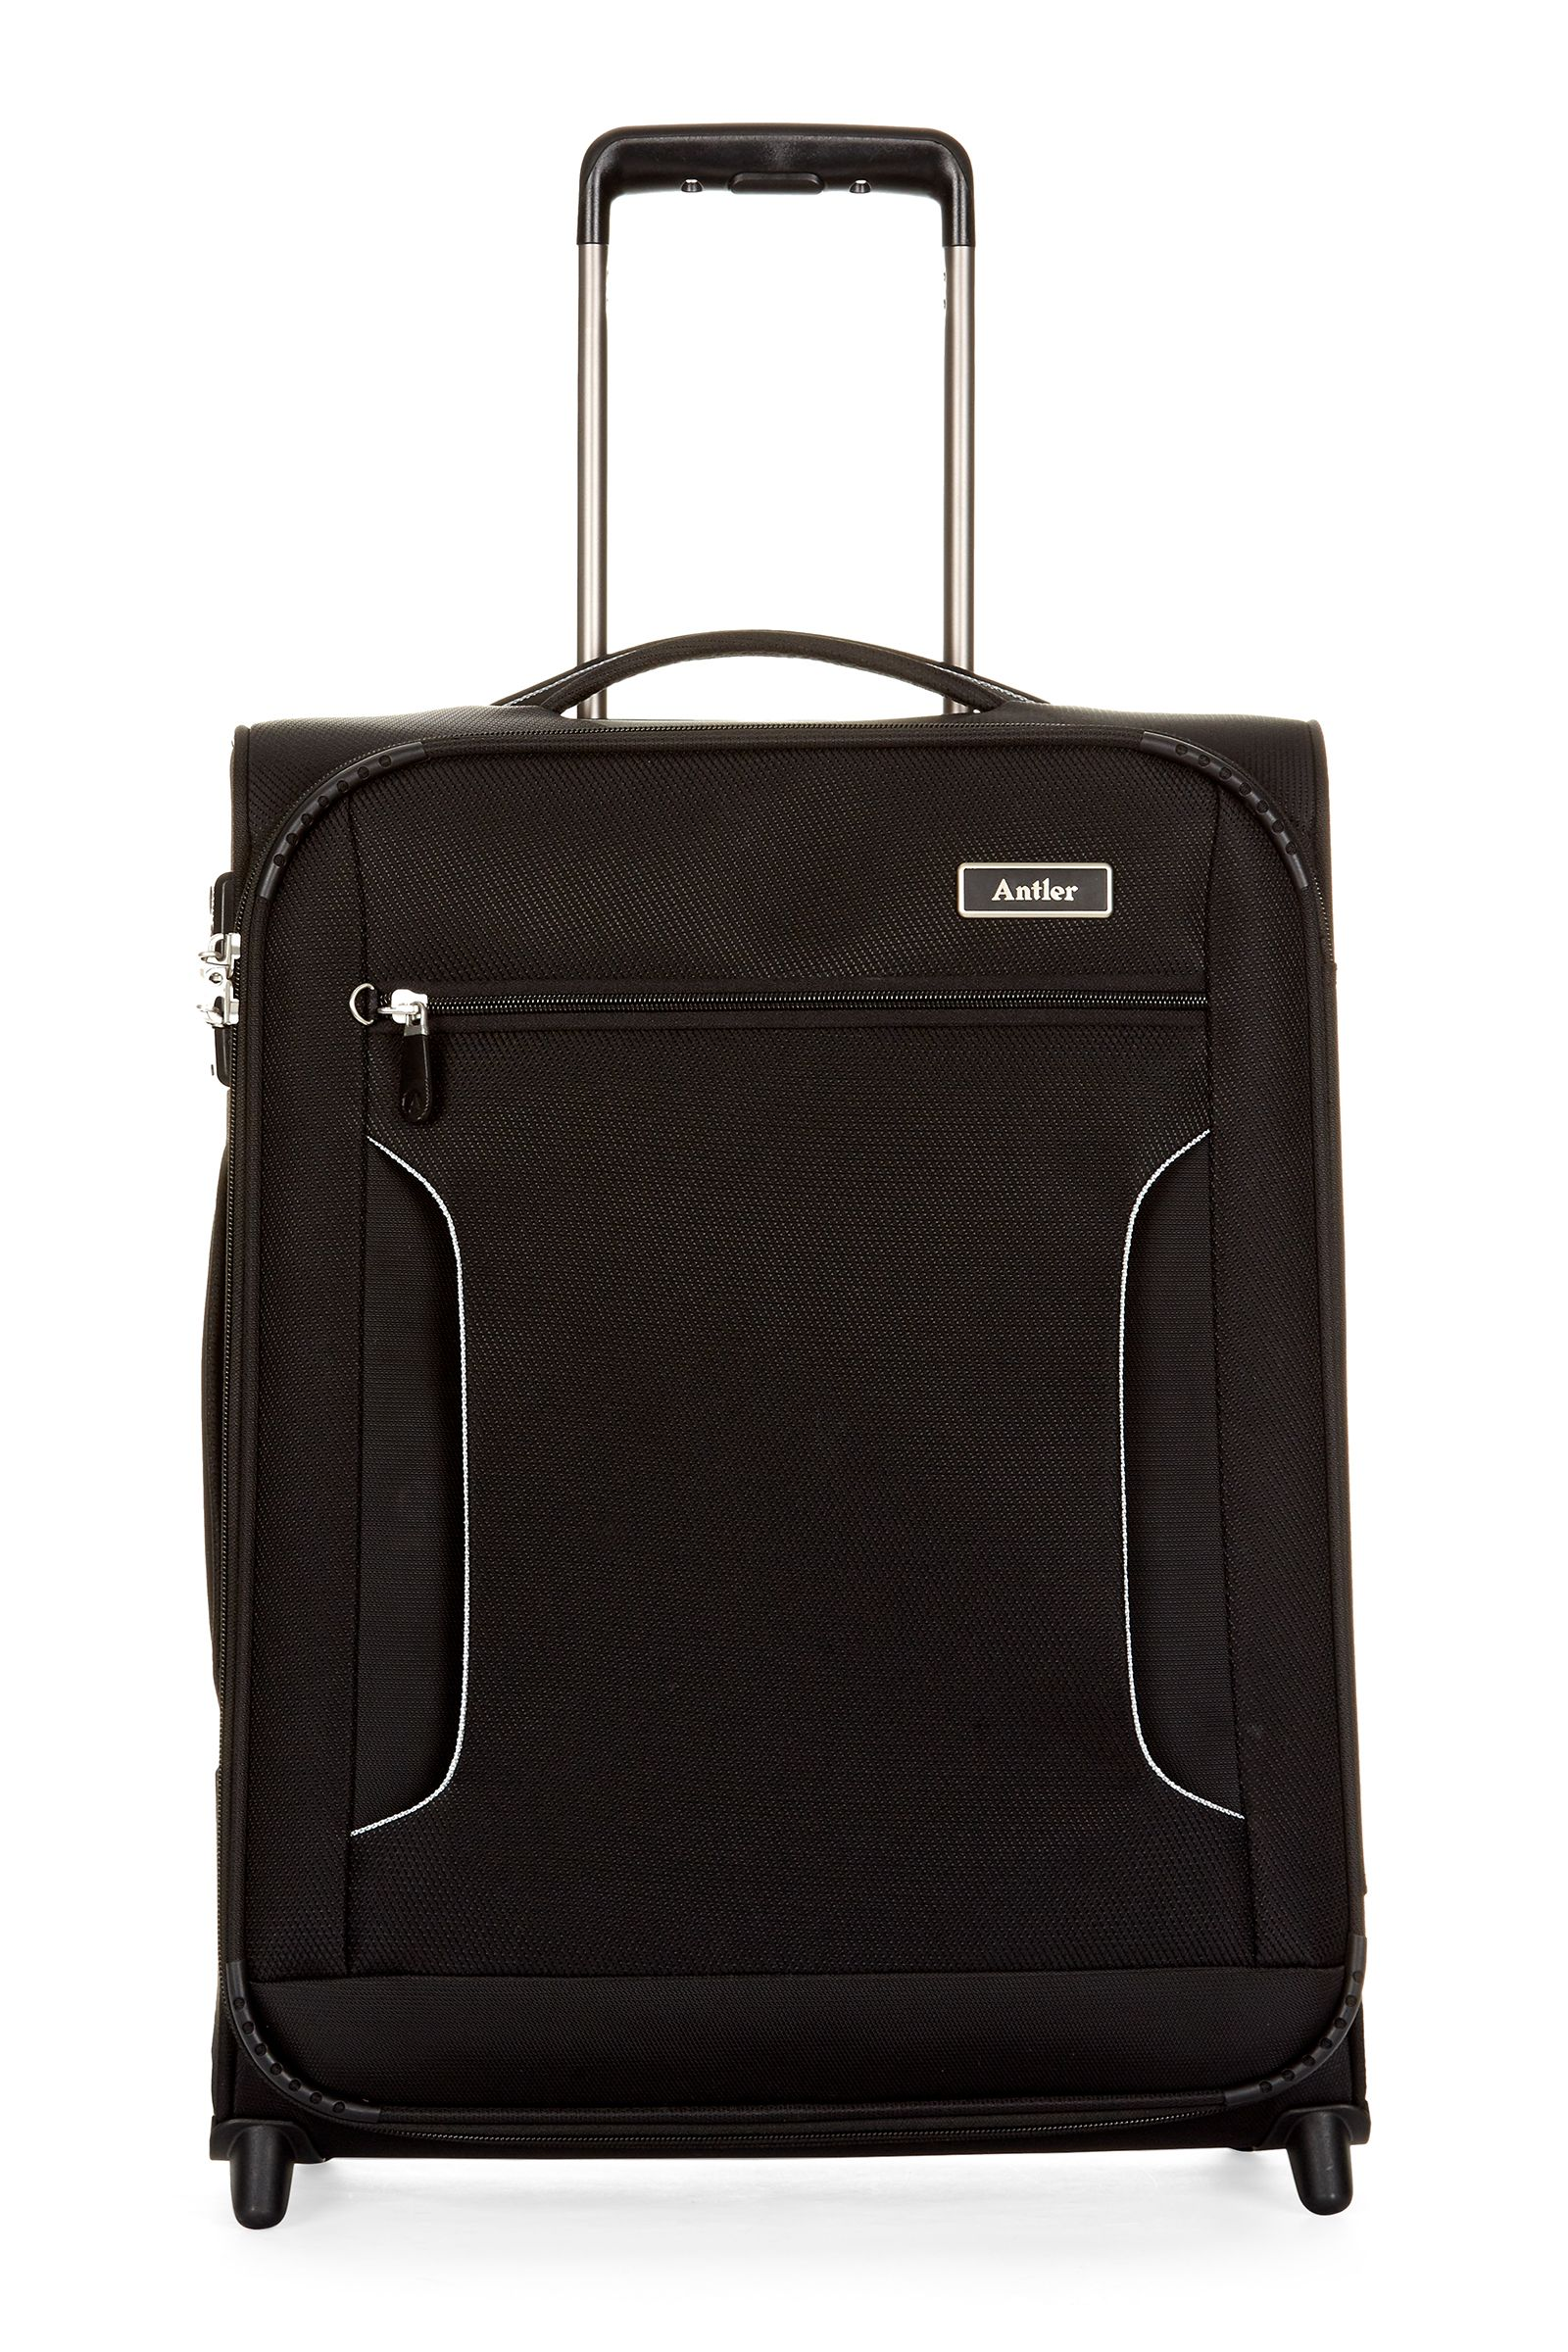 Antler Cyberlite II Black 2 Wheel Soft Cabin Suitcase Black